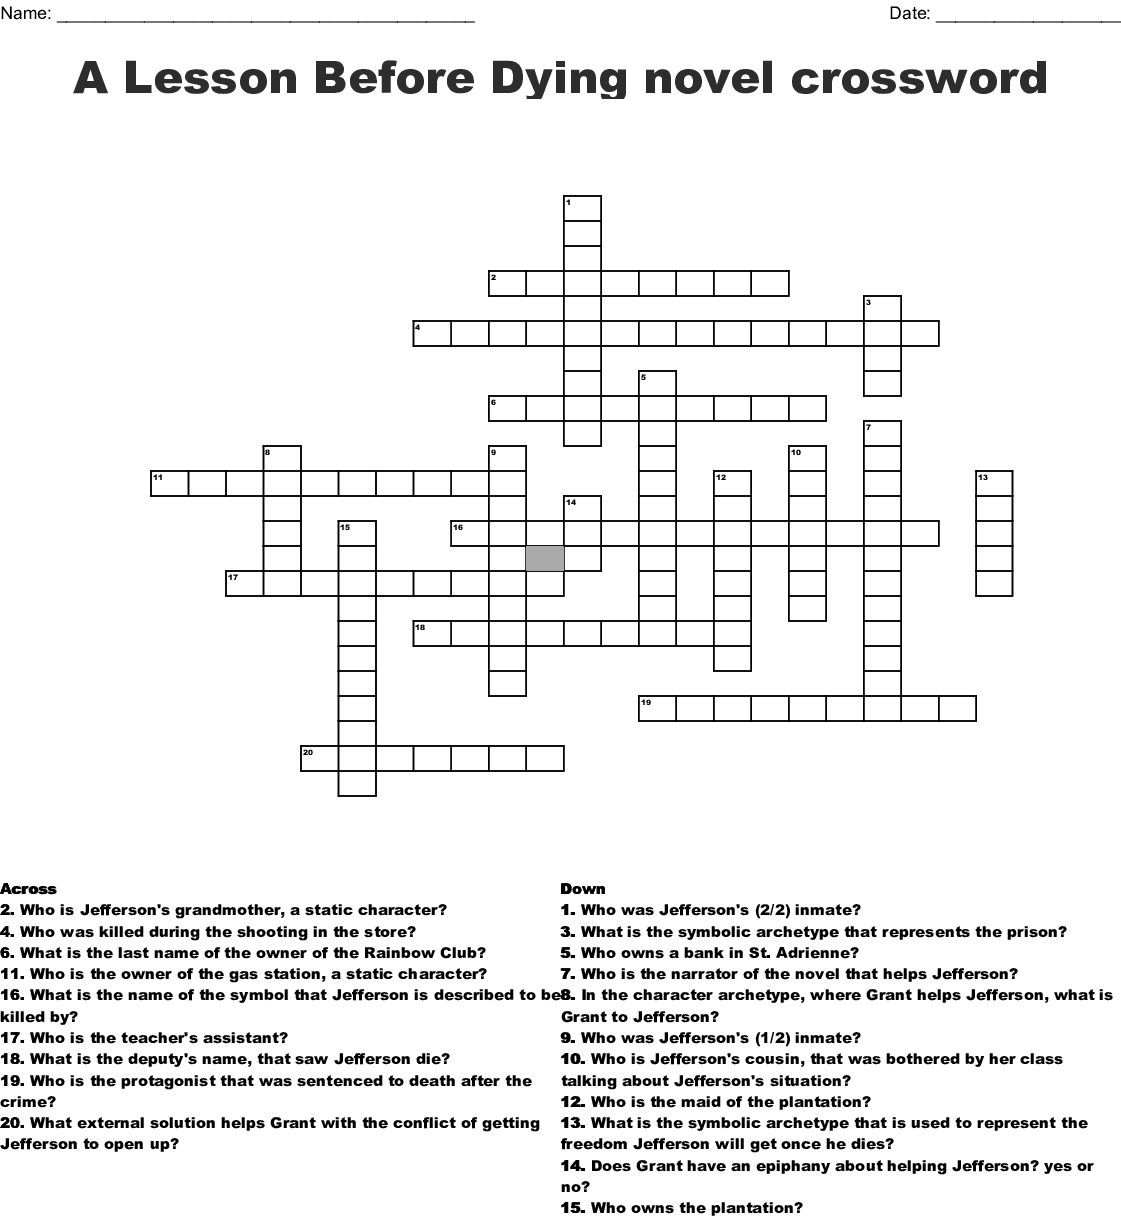 A Lesson Before Dying Word Search